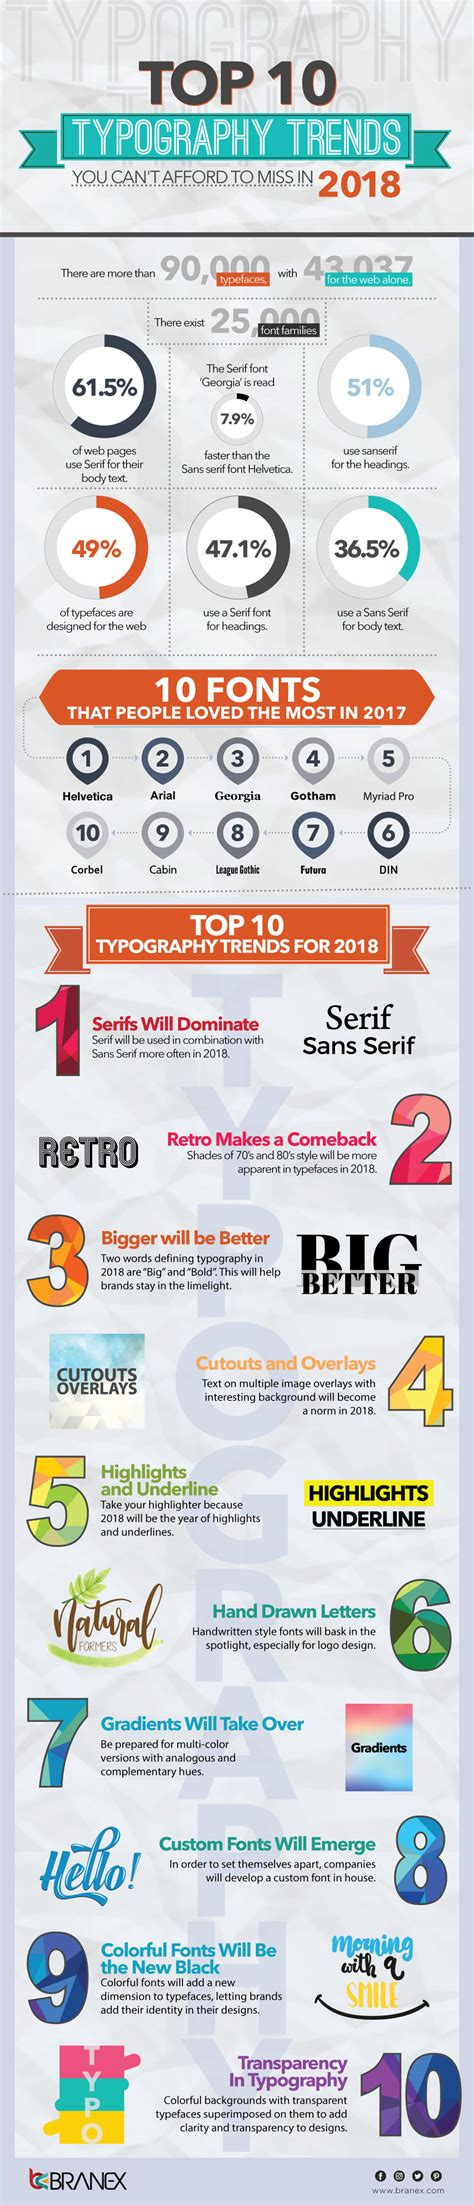 top 10 typography trends you can t afford to miss in 2018